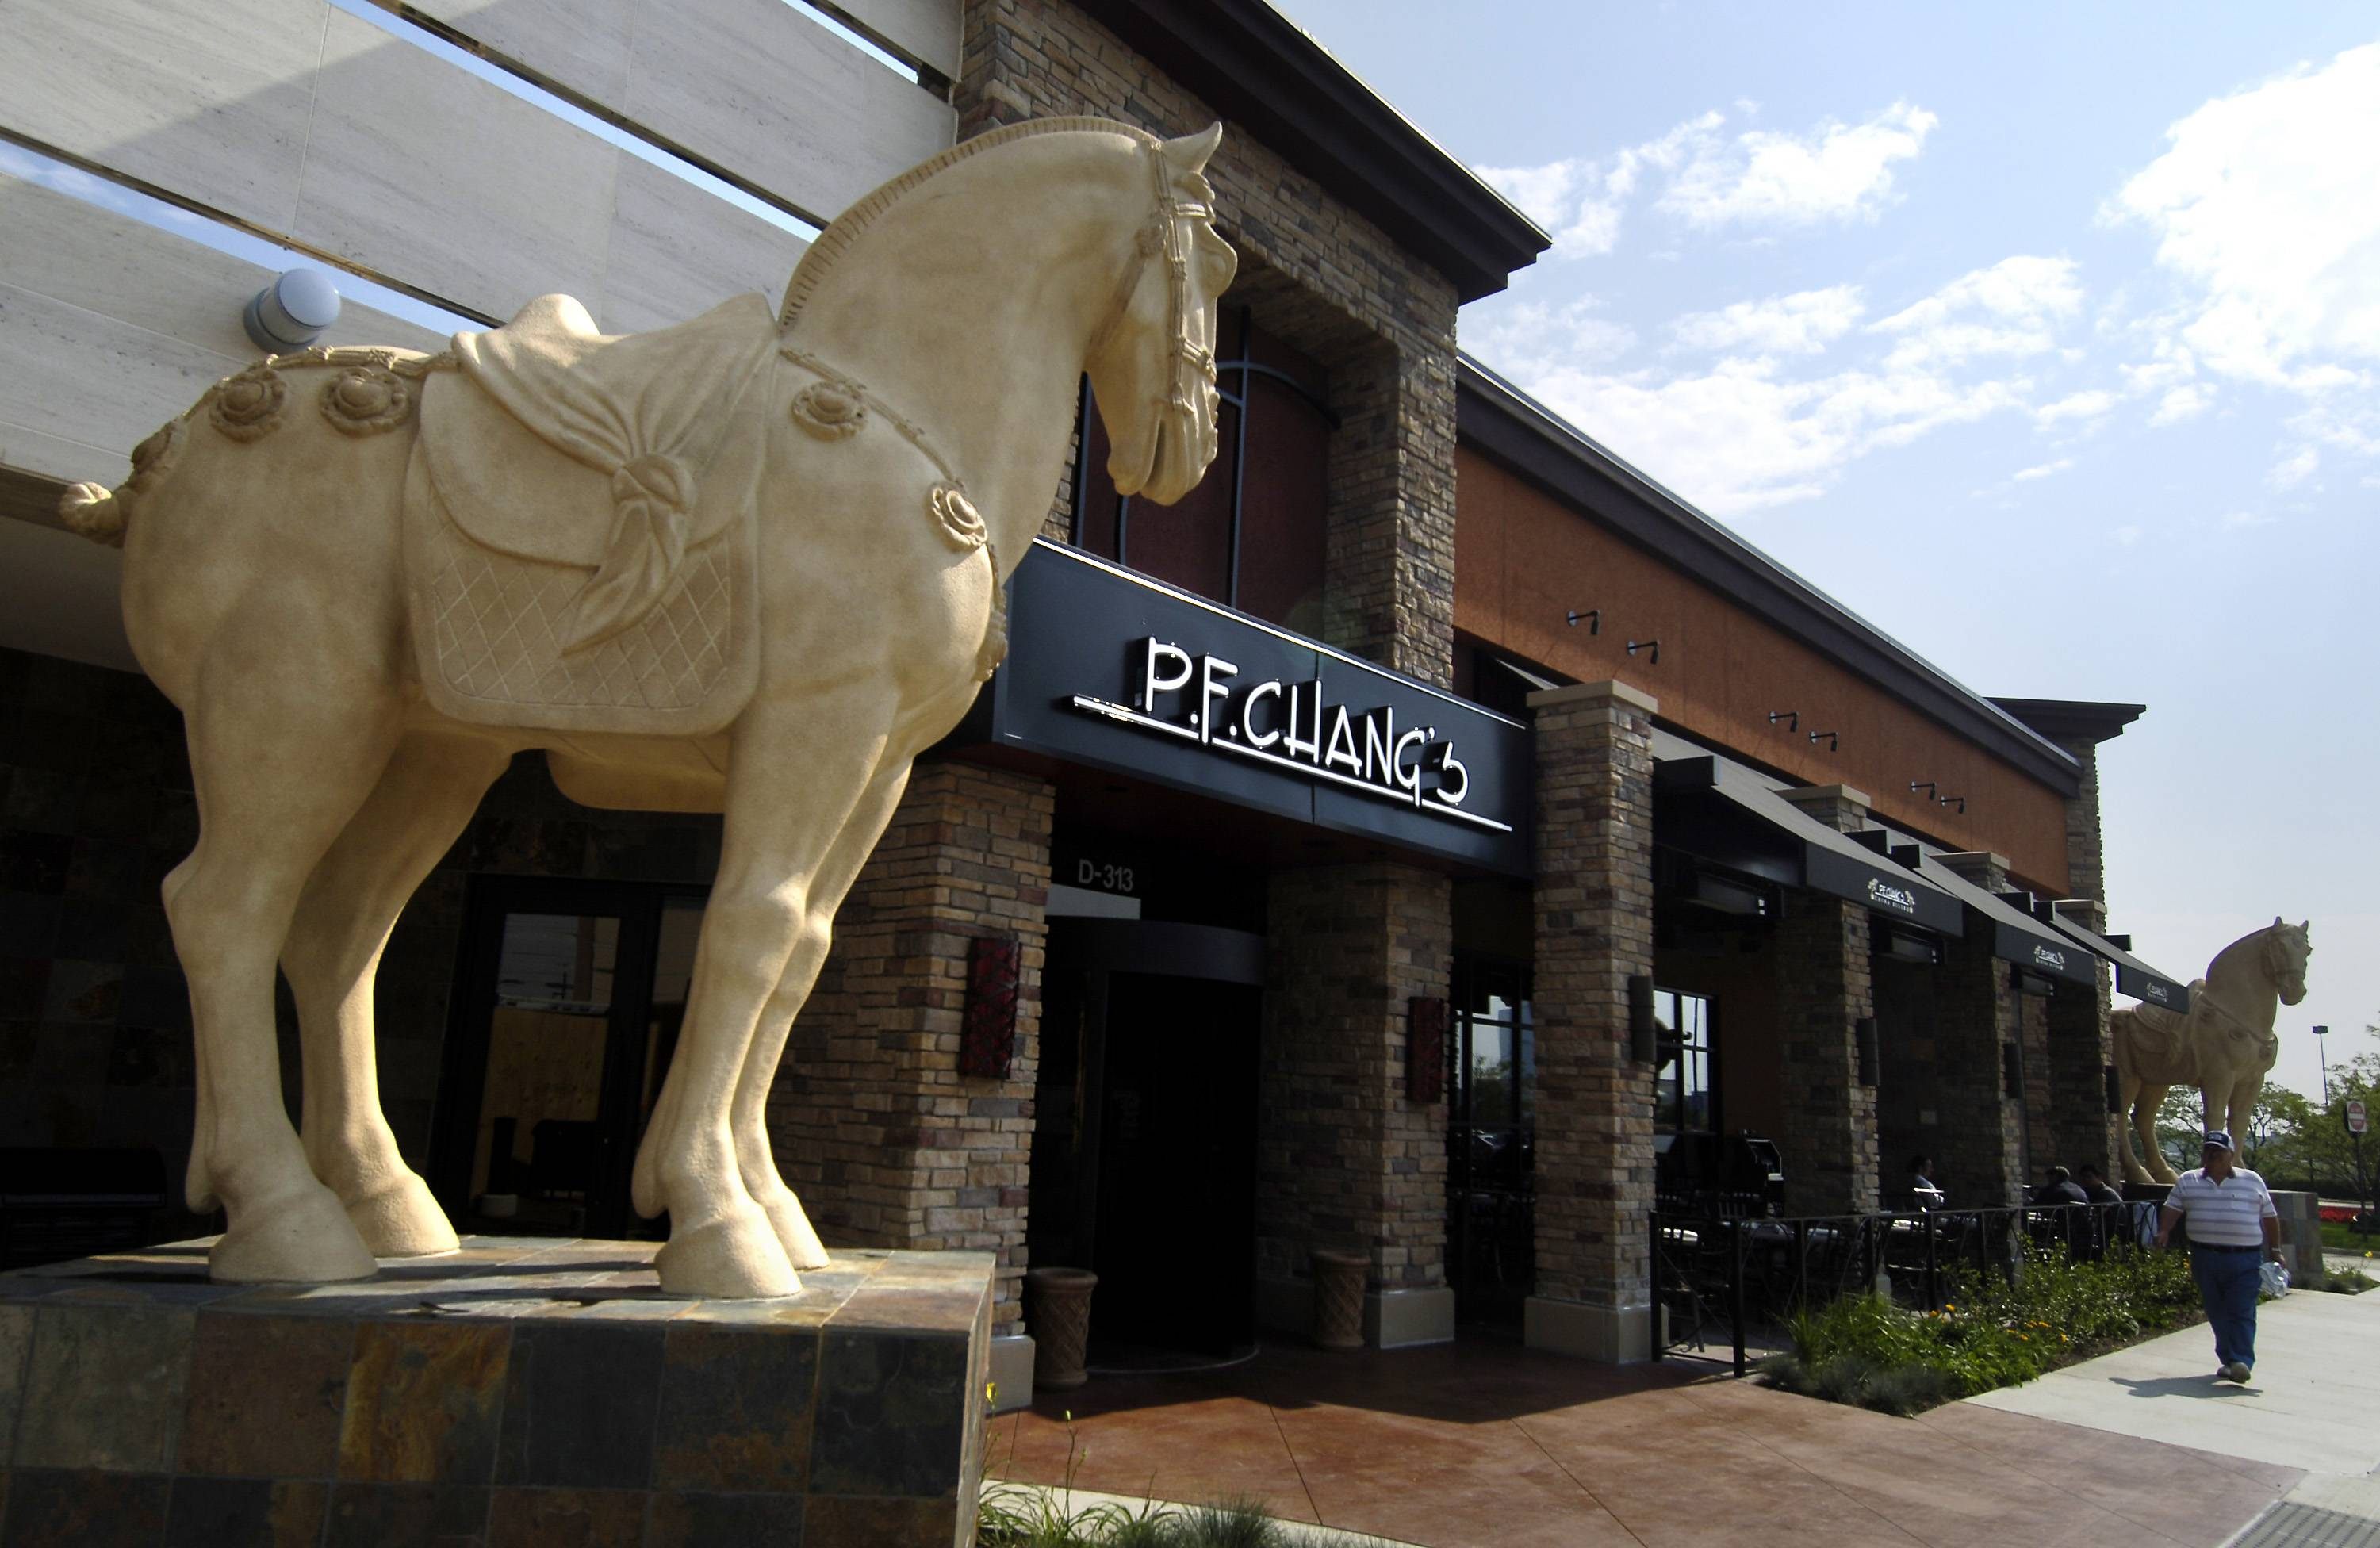 P.F. Chang's China Bistro at Woodfield Mall in Schaumburg is one of 33 restaurants nationwide that may have been affected by a data breach, company officials said.